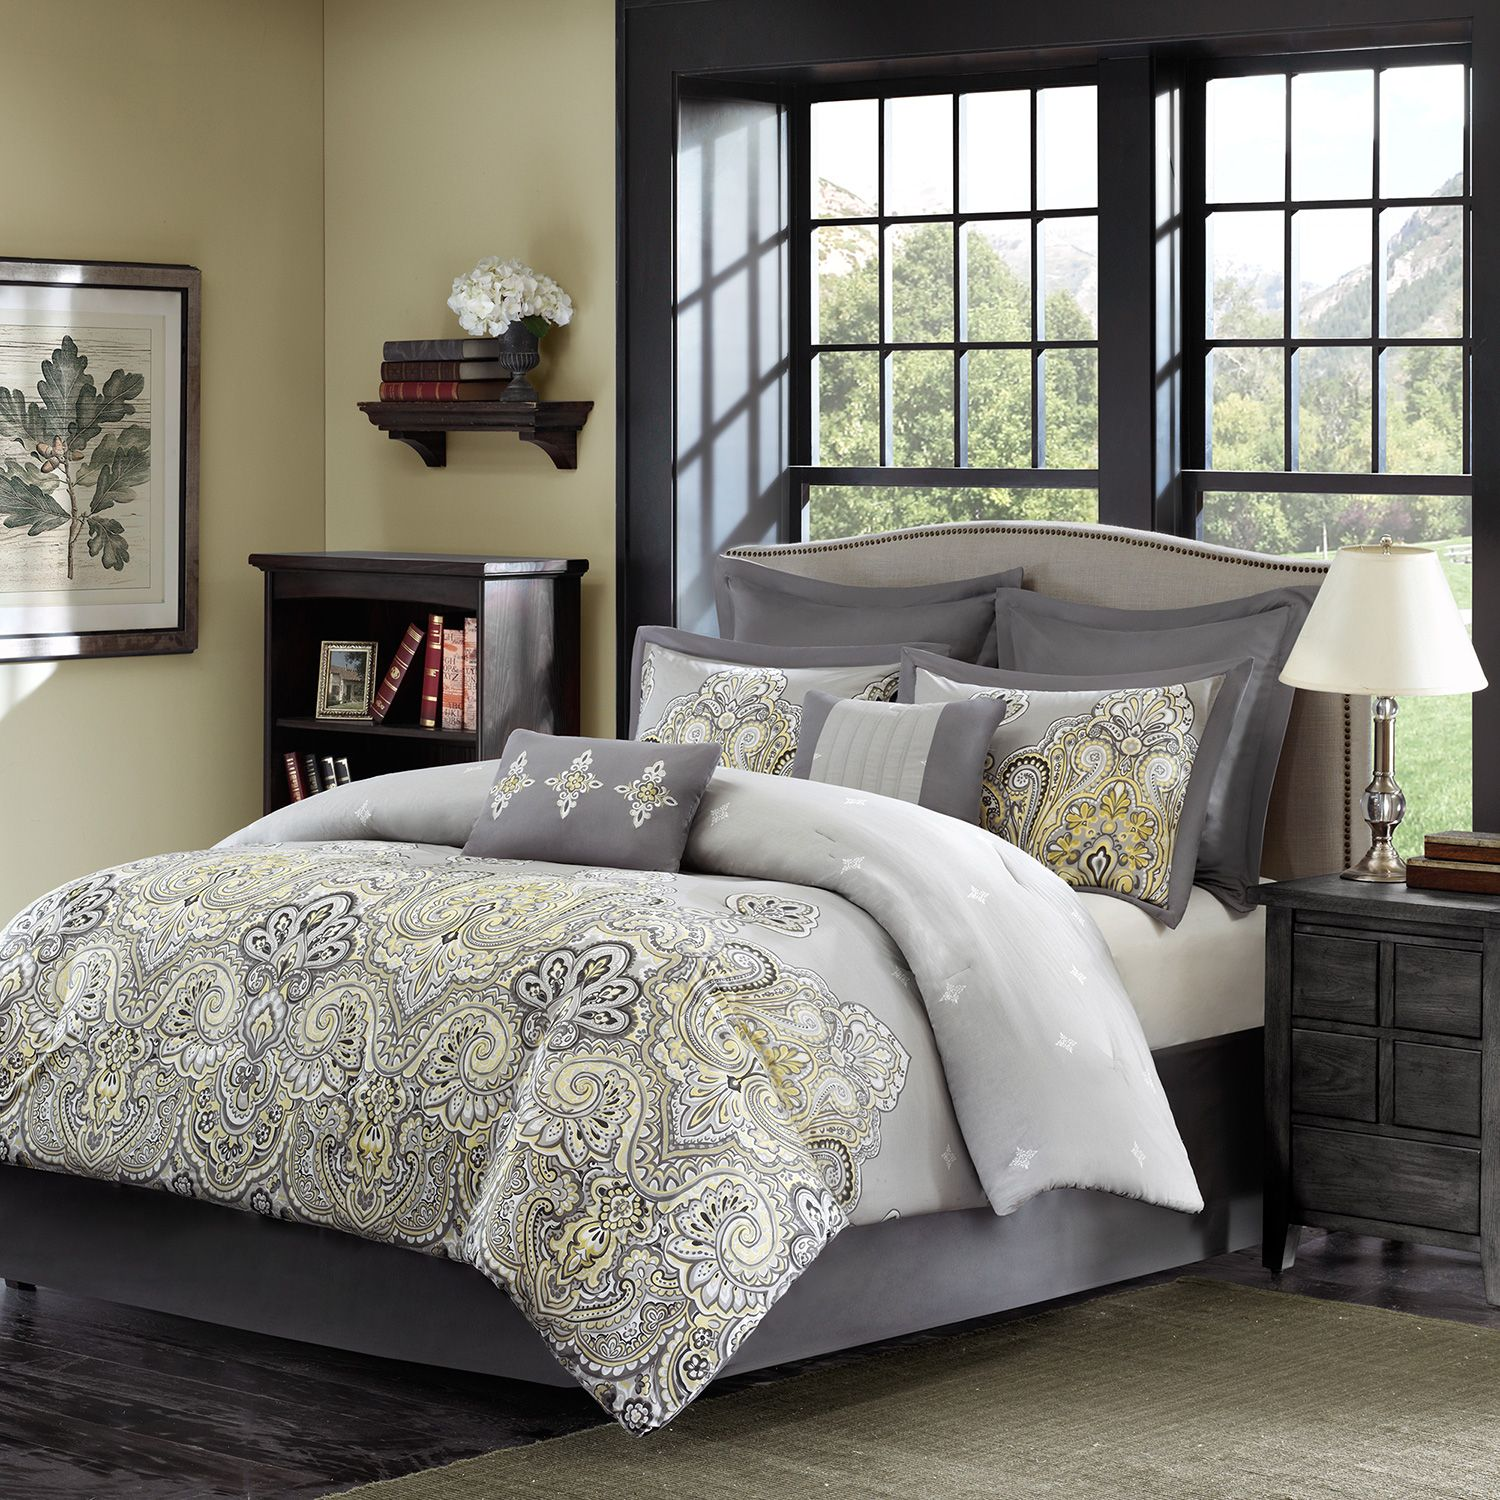 Interesting comforters sets for bedroom design with queen comforter sets